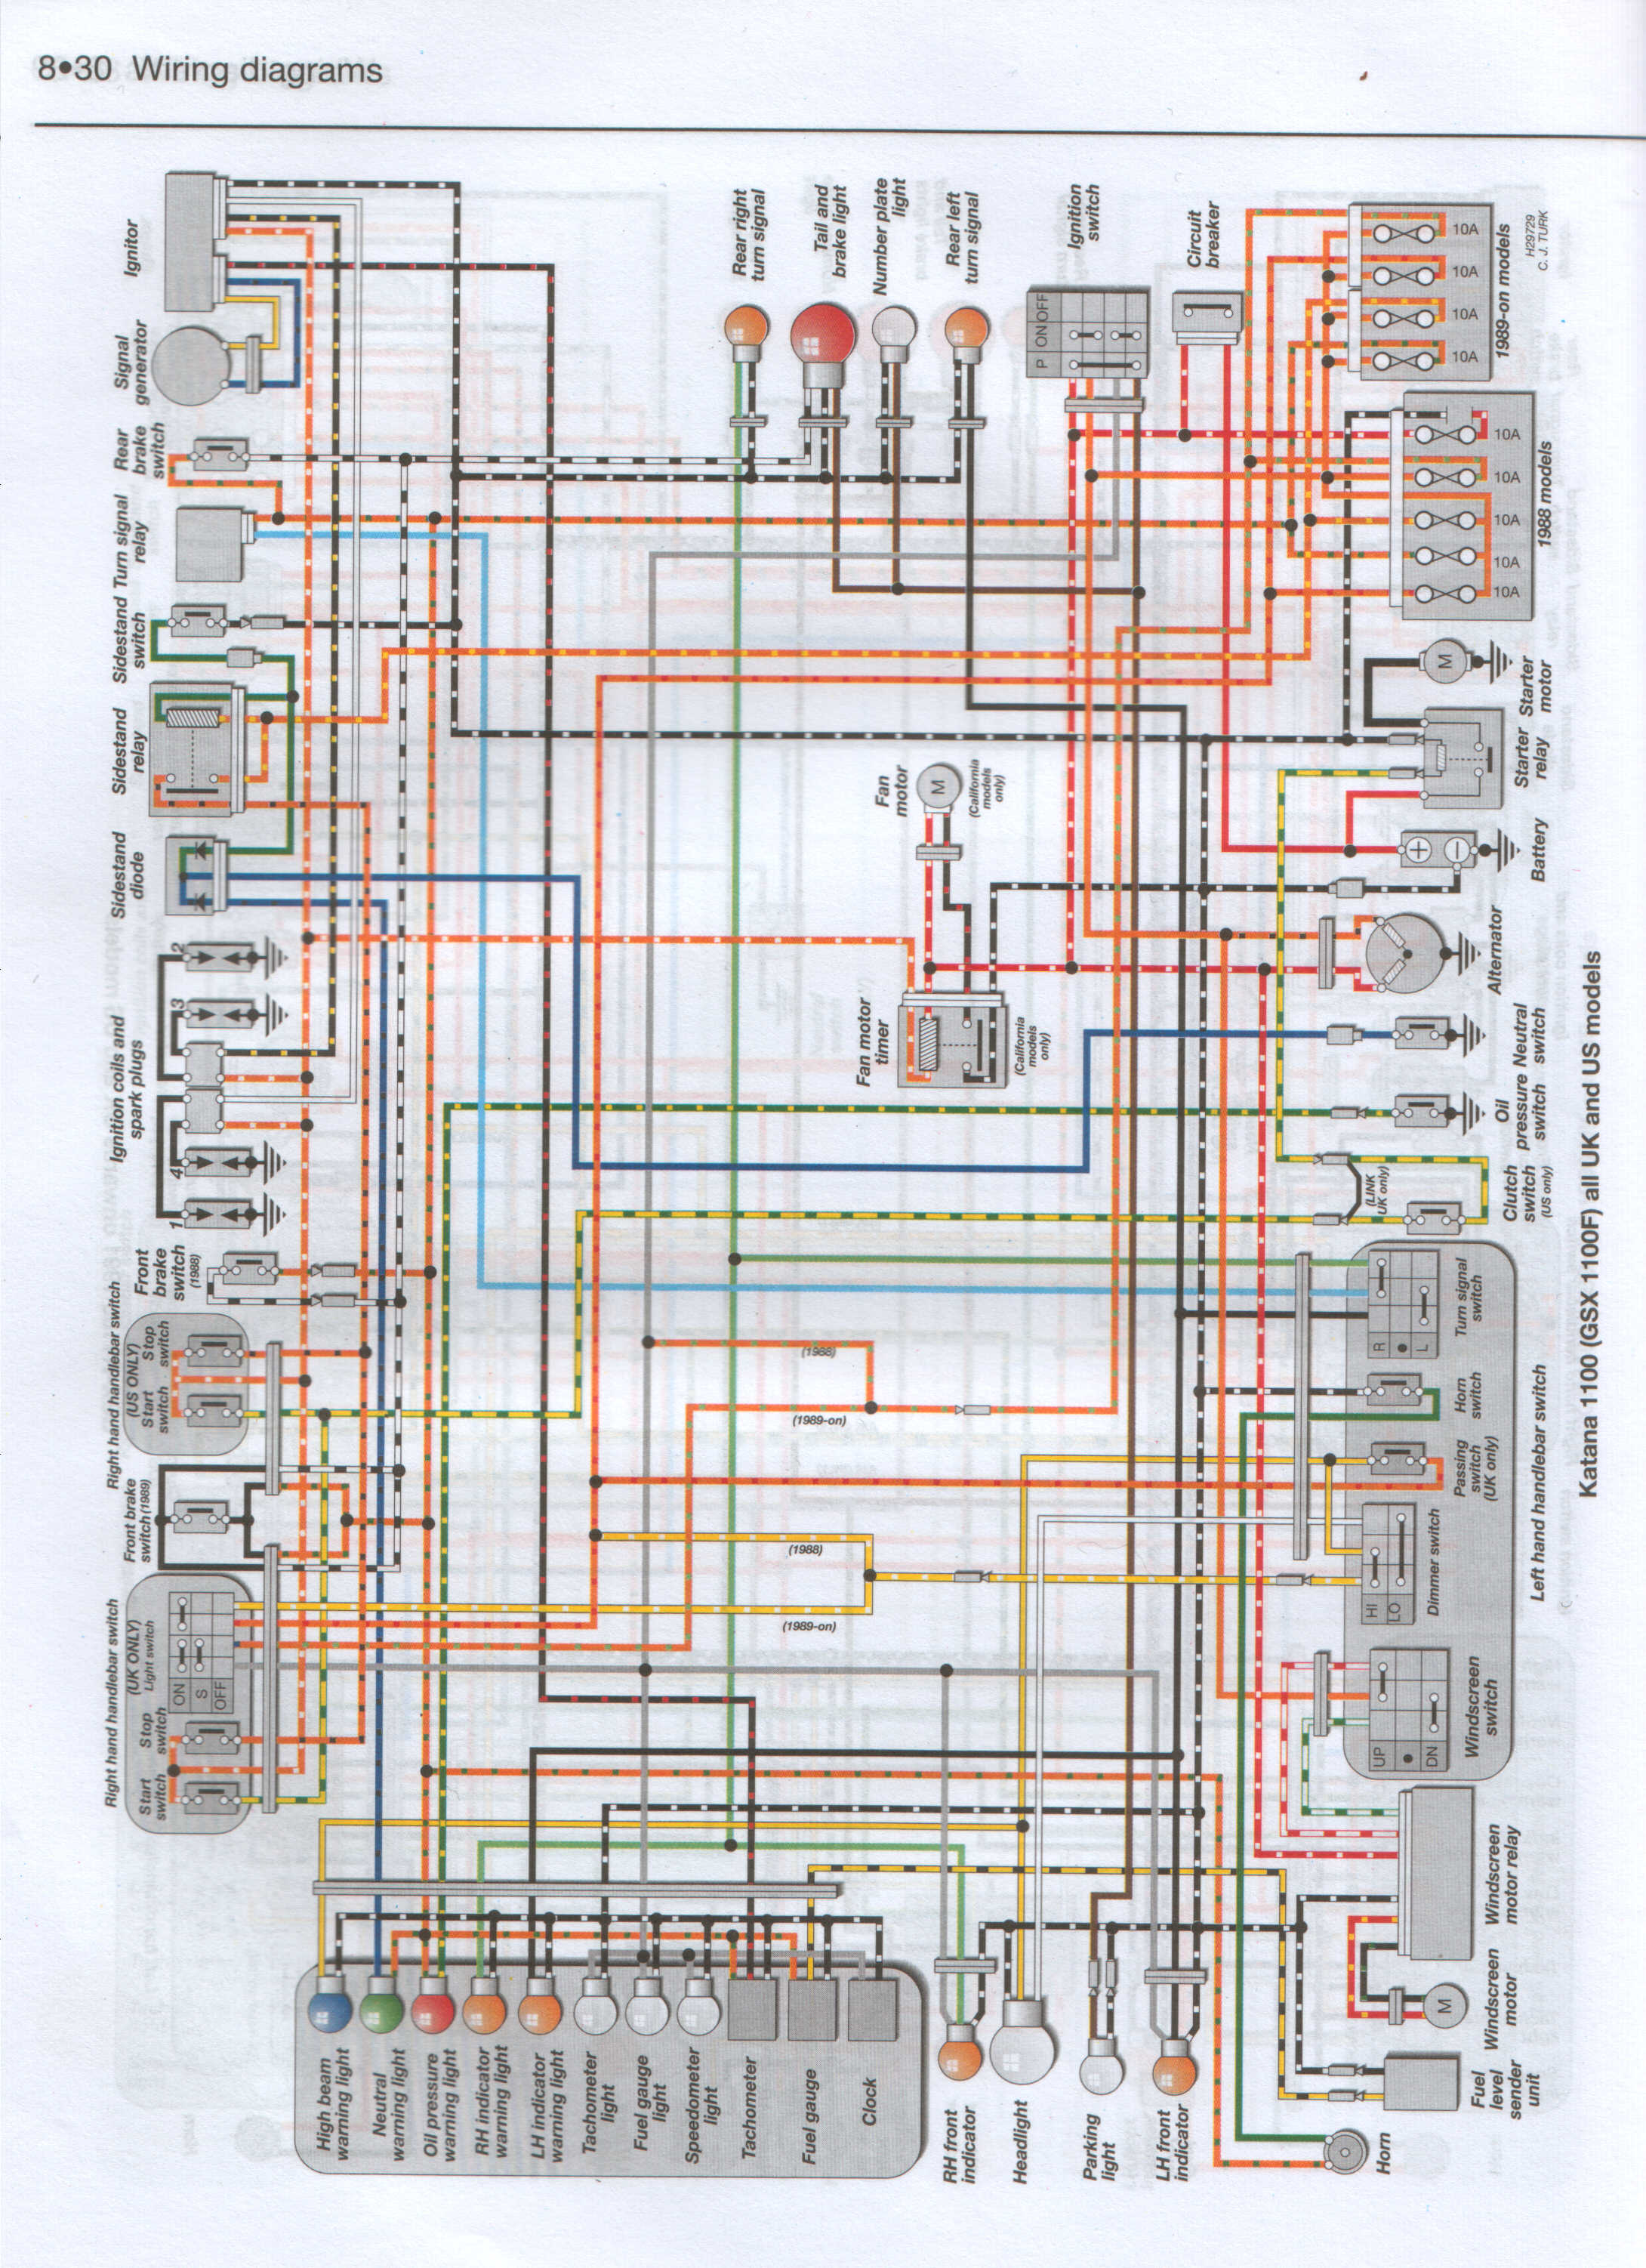 22_1275754339 gsxr 750 wiring diagram efcaviation com suzuki katana wiring harness at n-0.co